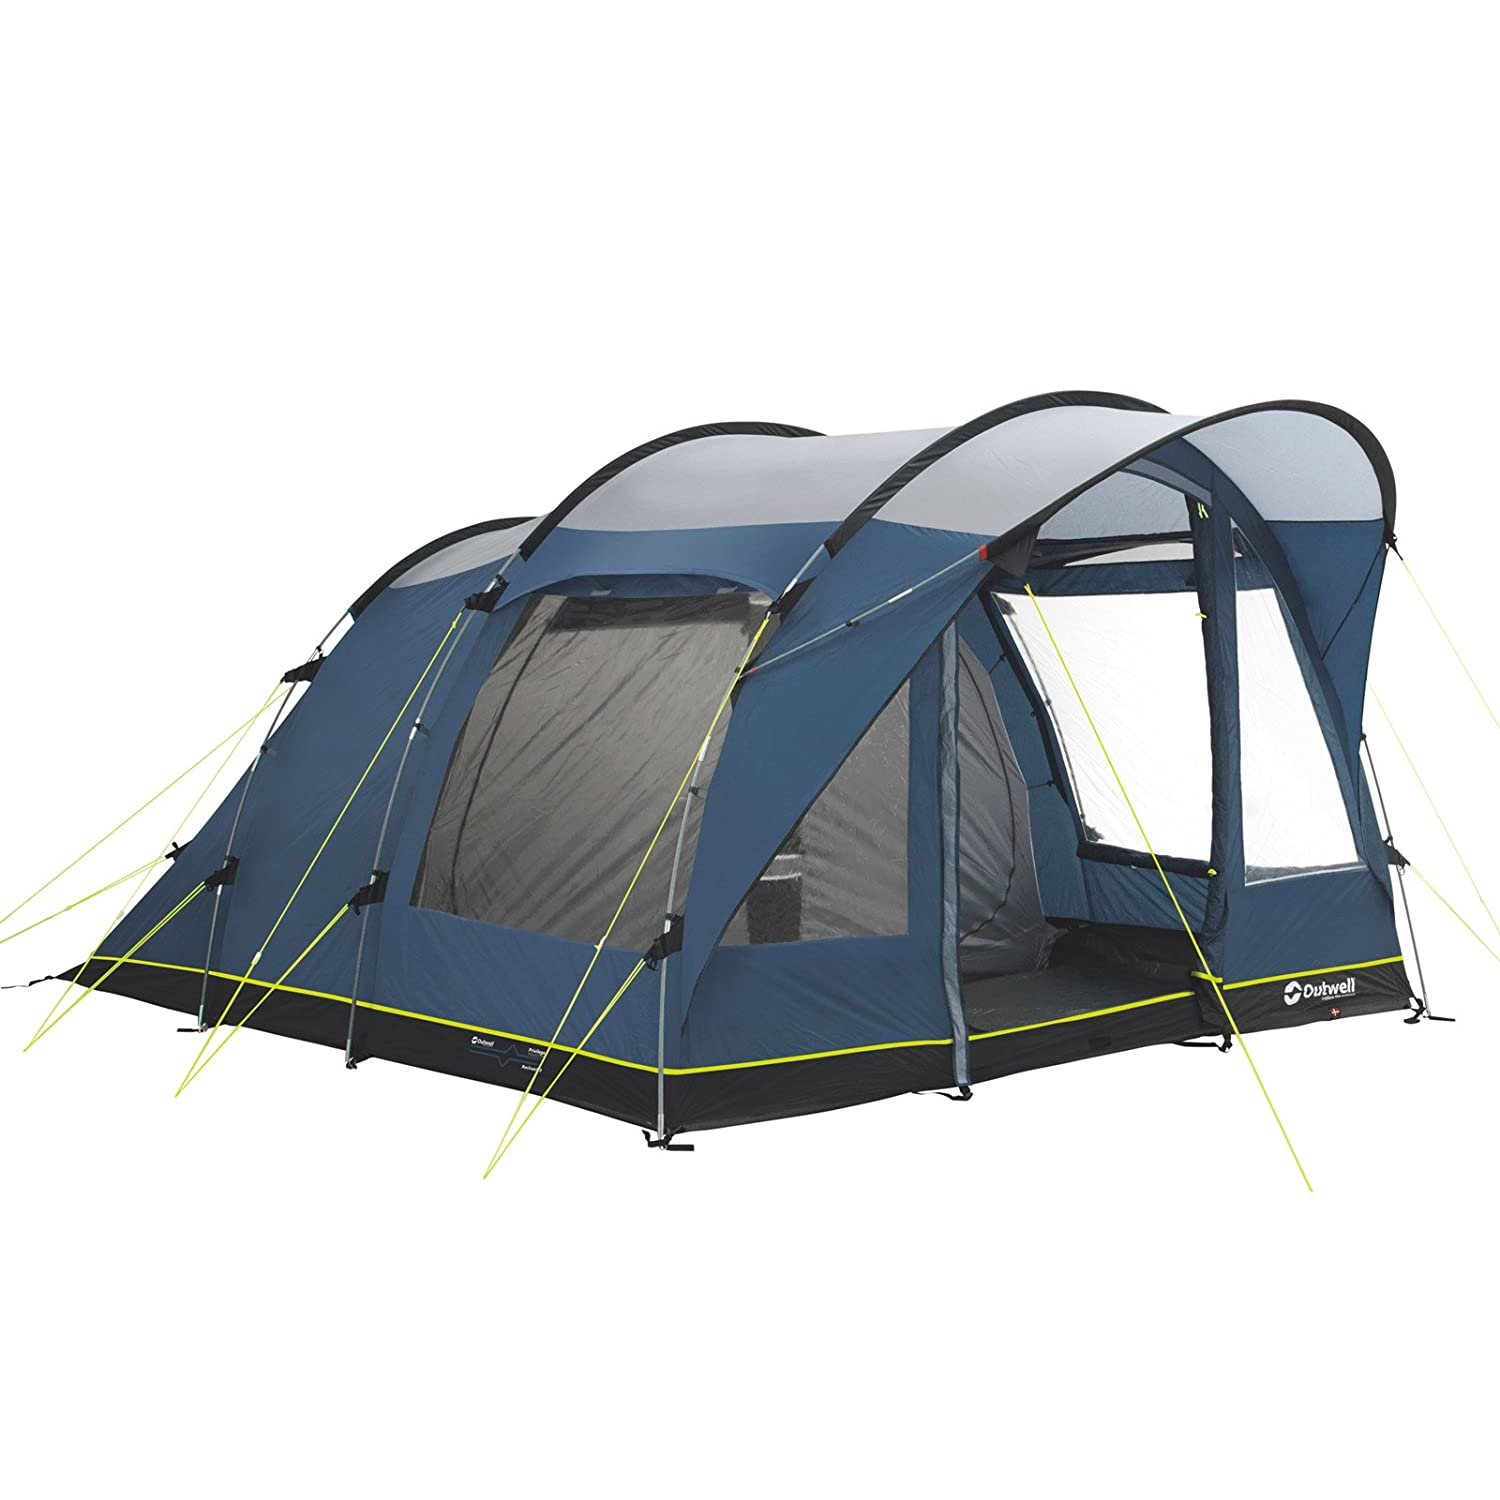 Outwell Rockwell 5 family tent grey/blue 2016 camp tent